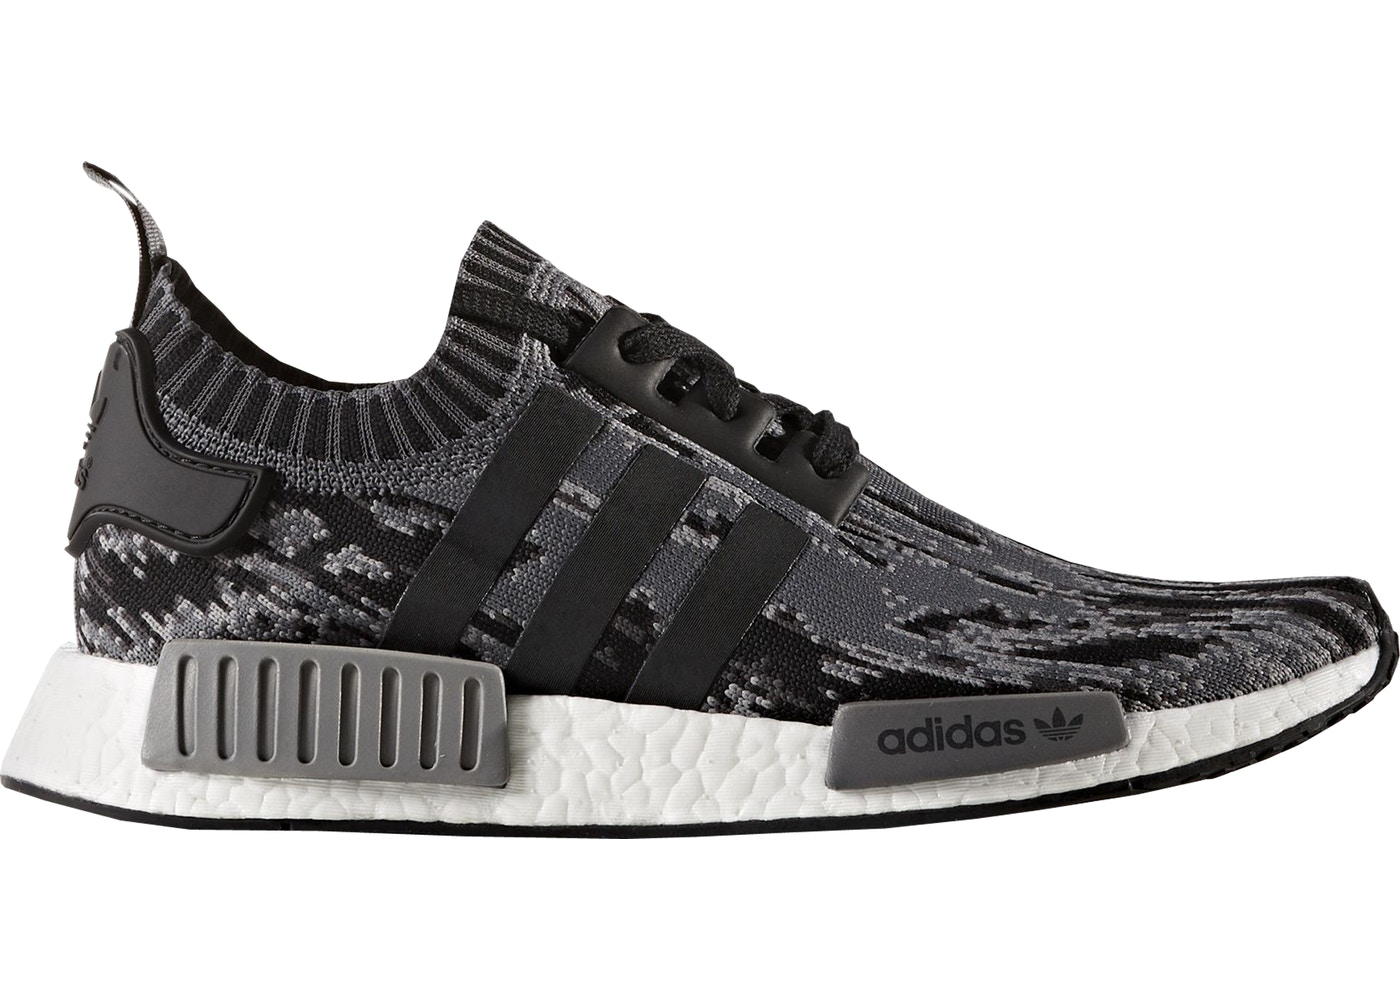 51a2d3d6ee089 adidas NMD R1 Core Black Grey Three - BZ0223